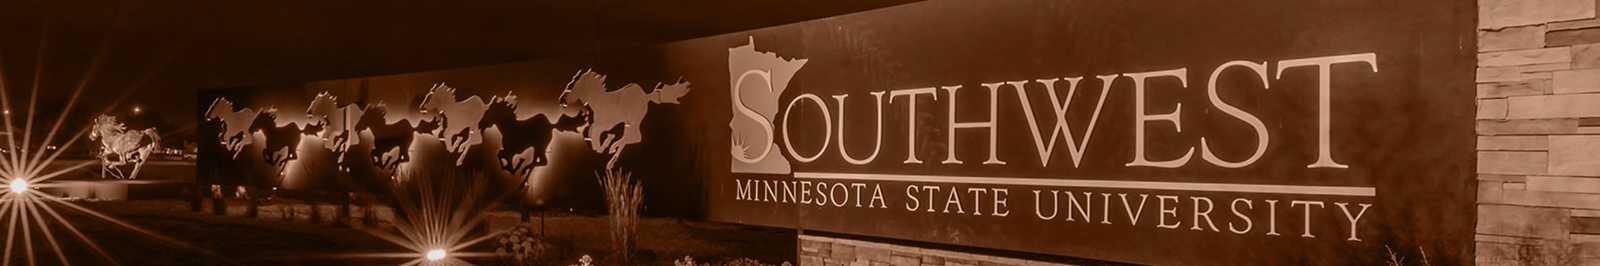 Southwest Minnesota State University | Athletics Ticketing